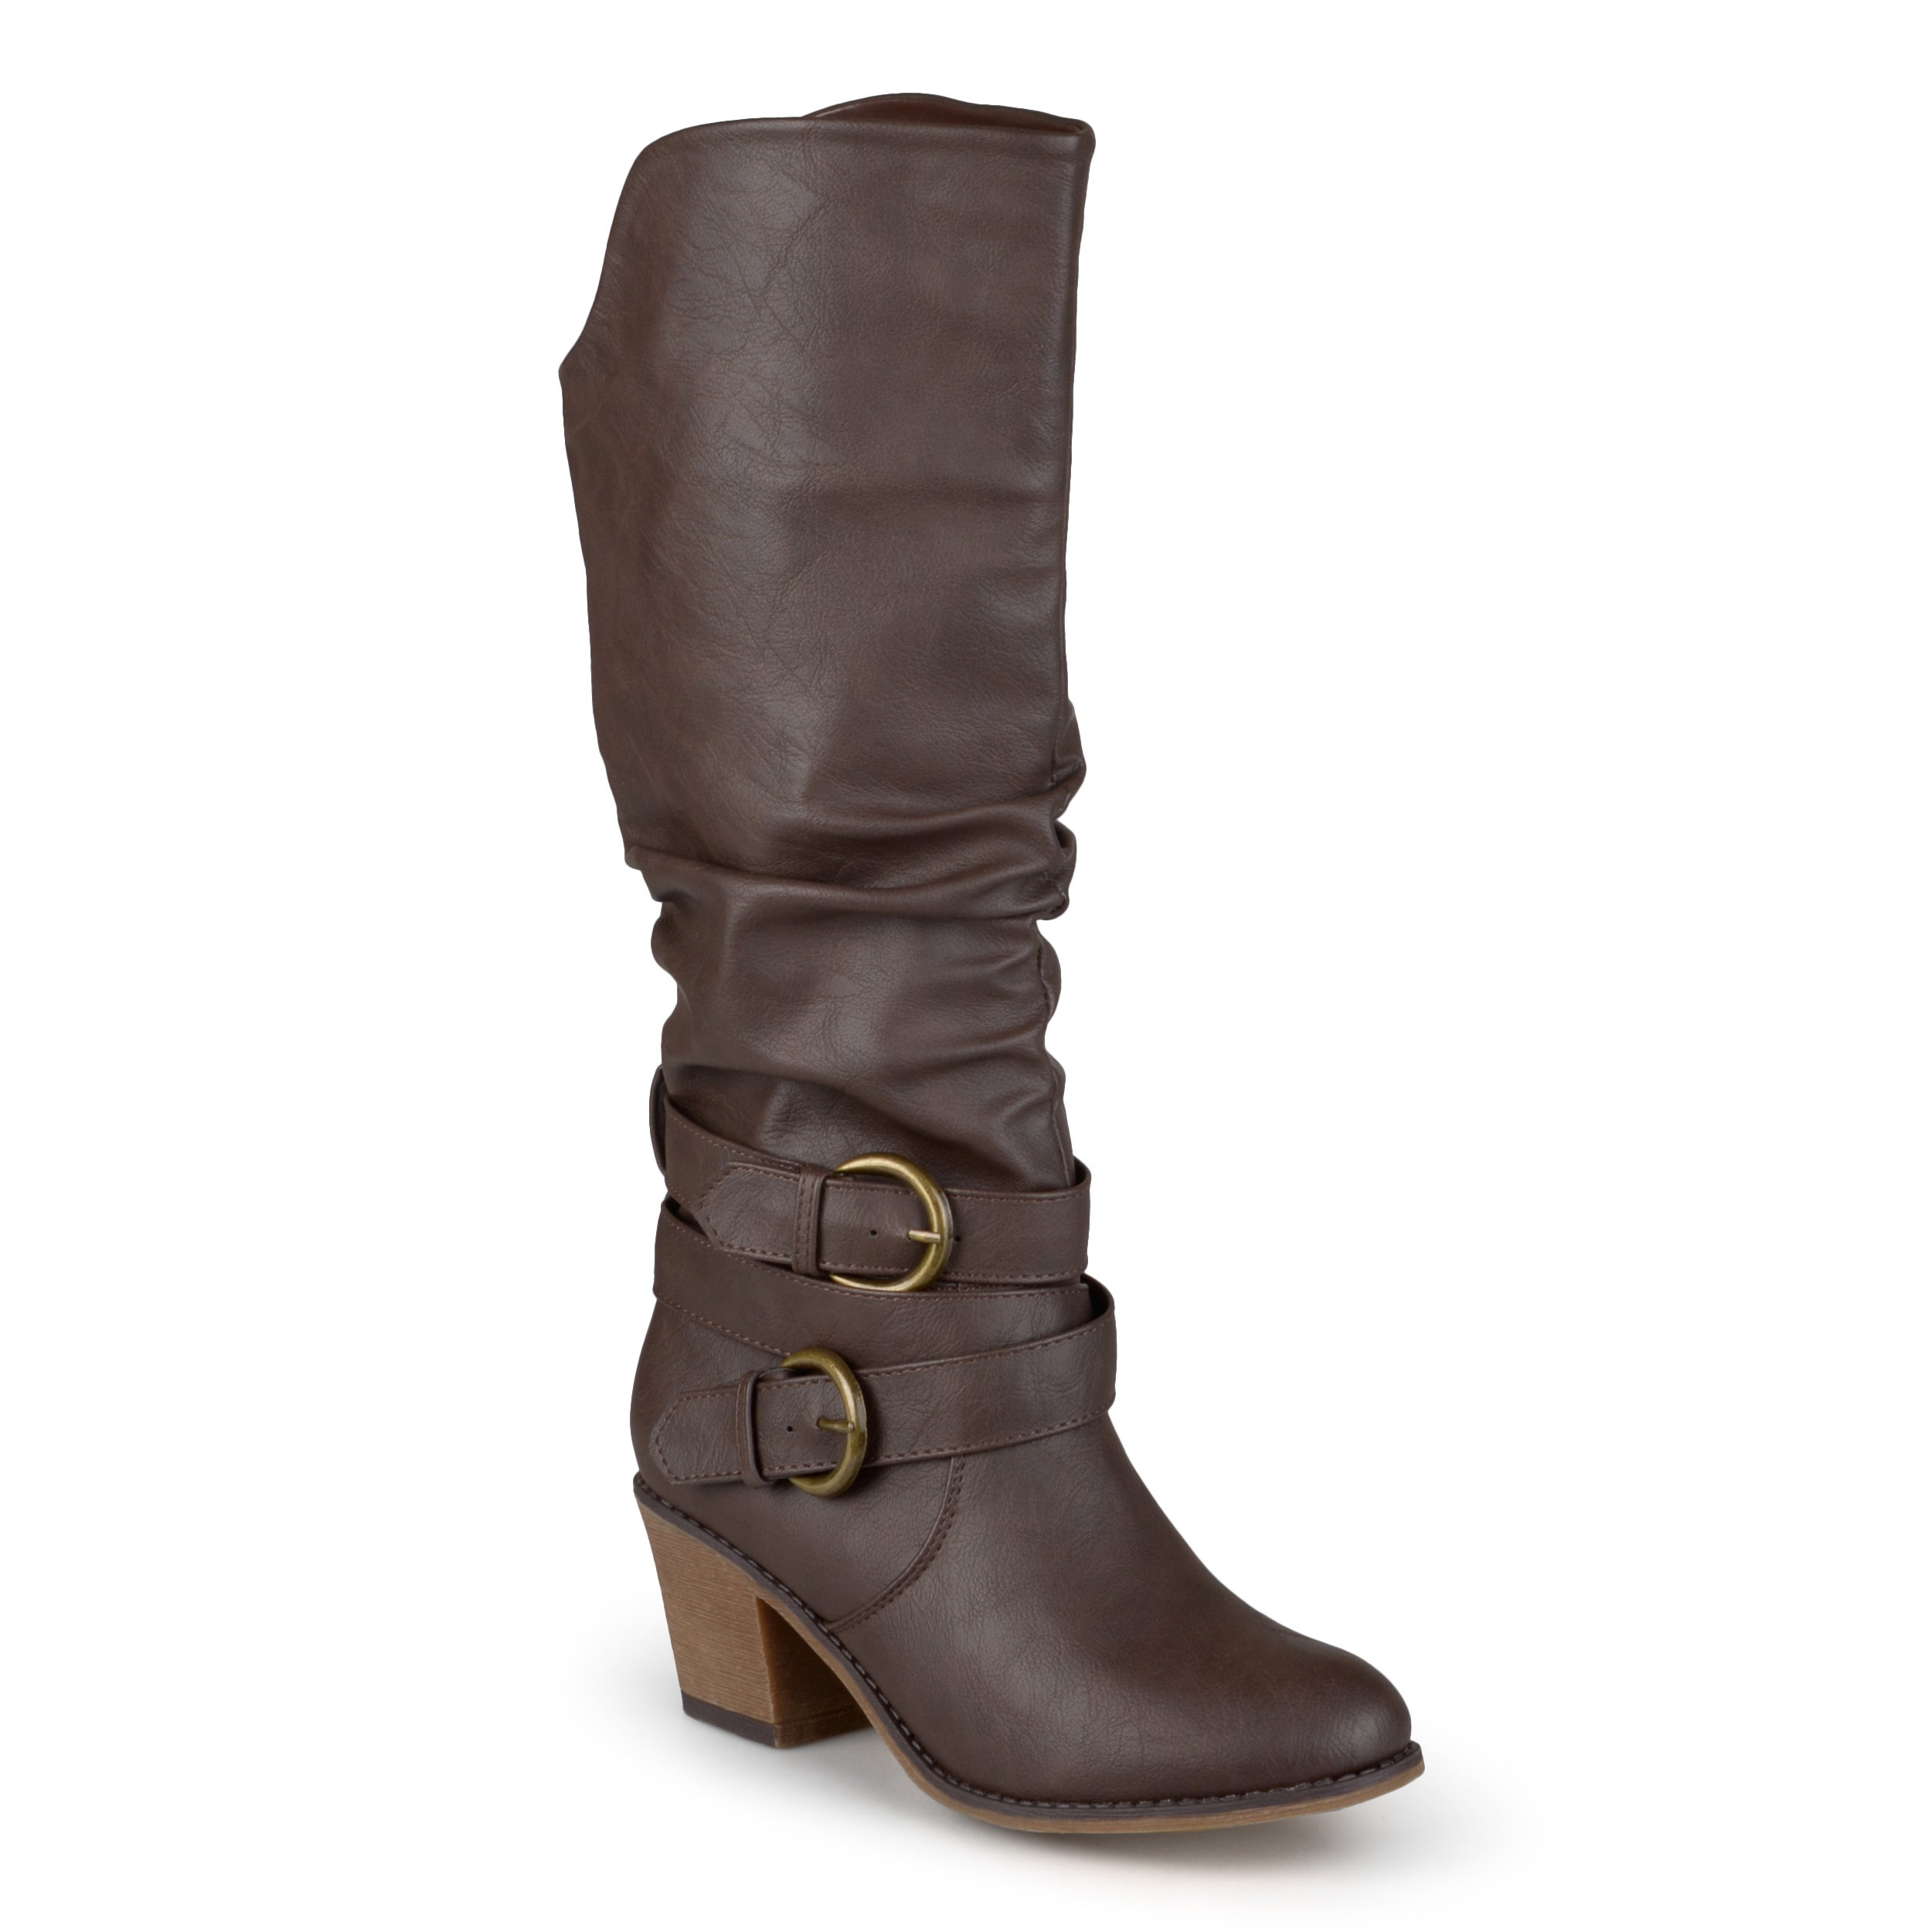 cd4e6338258fe Shop Journee Collection Women's 'Late' Buckle Slouch High Heel Boots - Free  Shipping Today - Overstock - 10337951